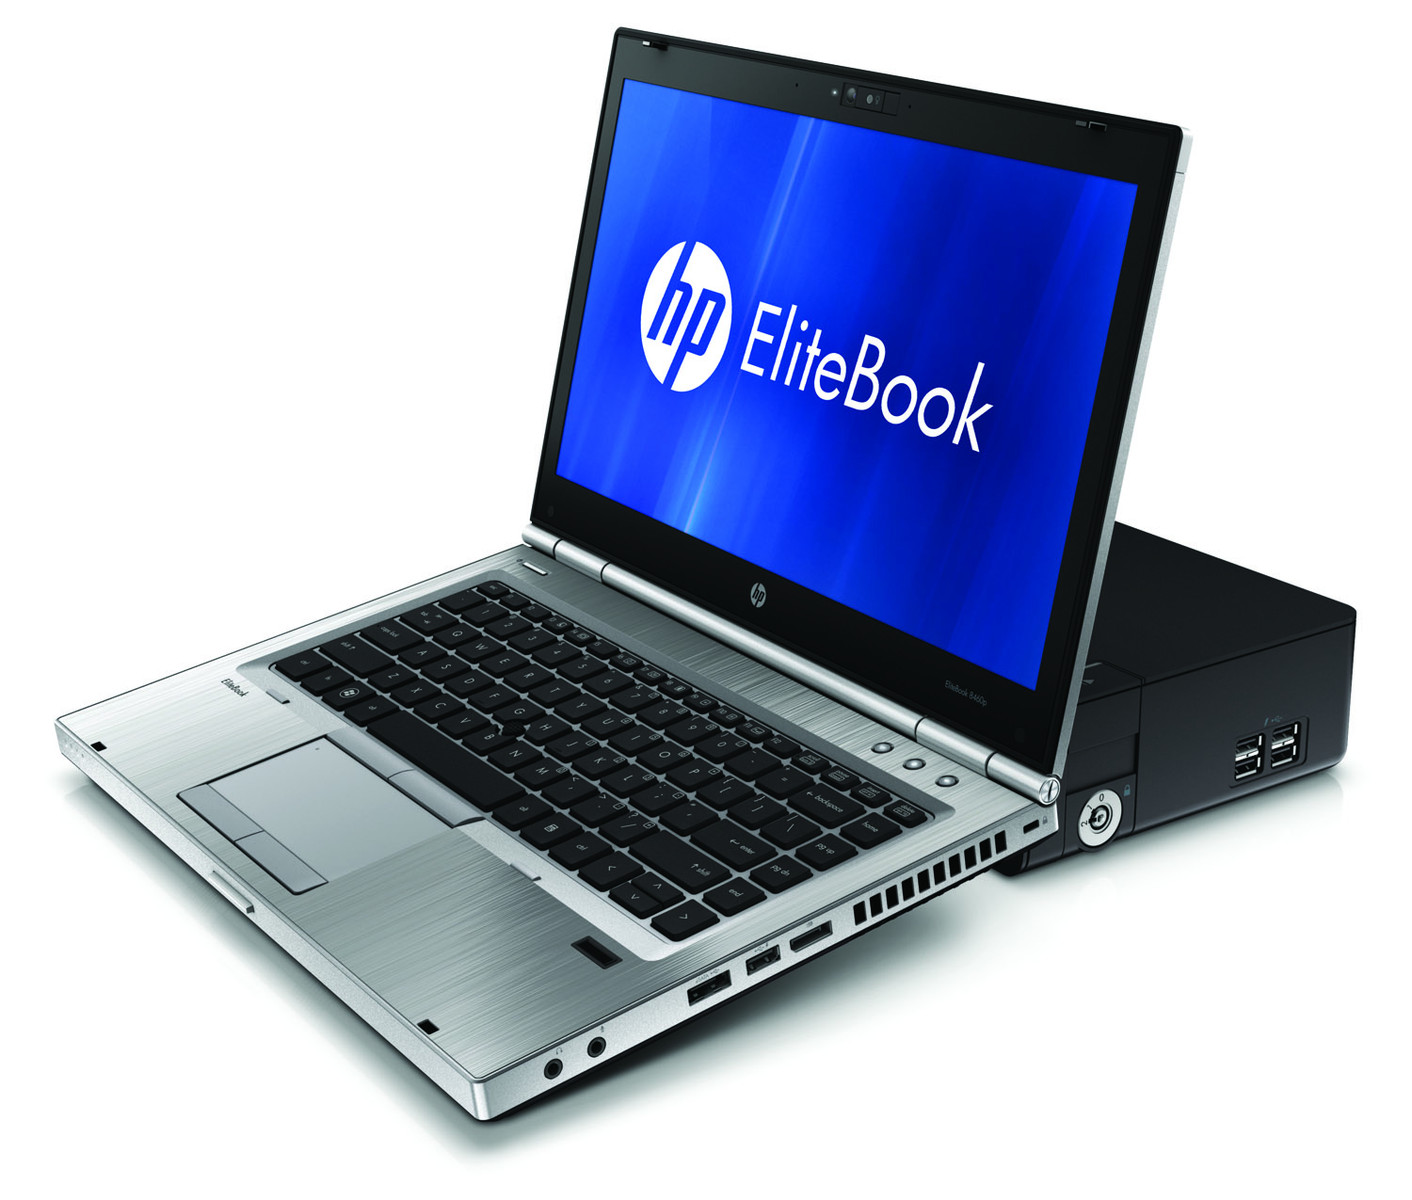 Hp Elitebook 8460p Hands On Hp Elitebook 8460p Probook 4530s